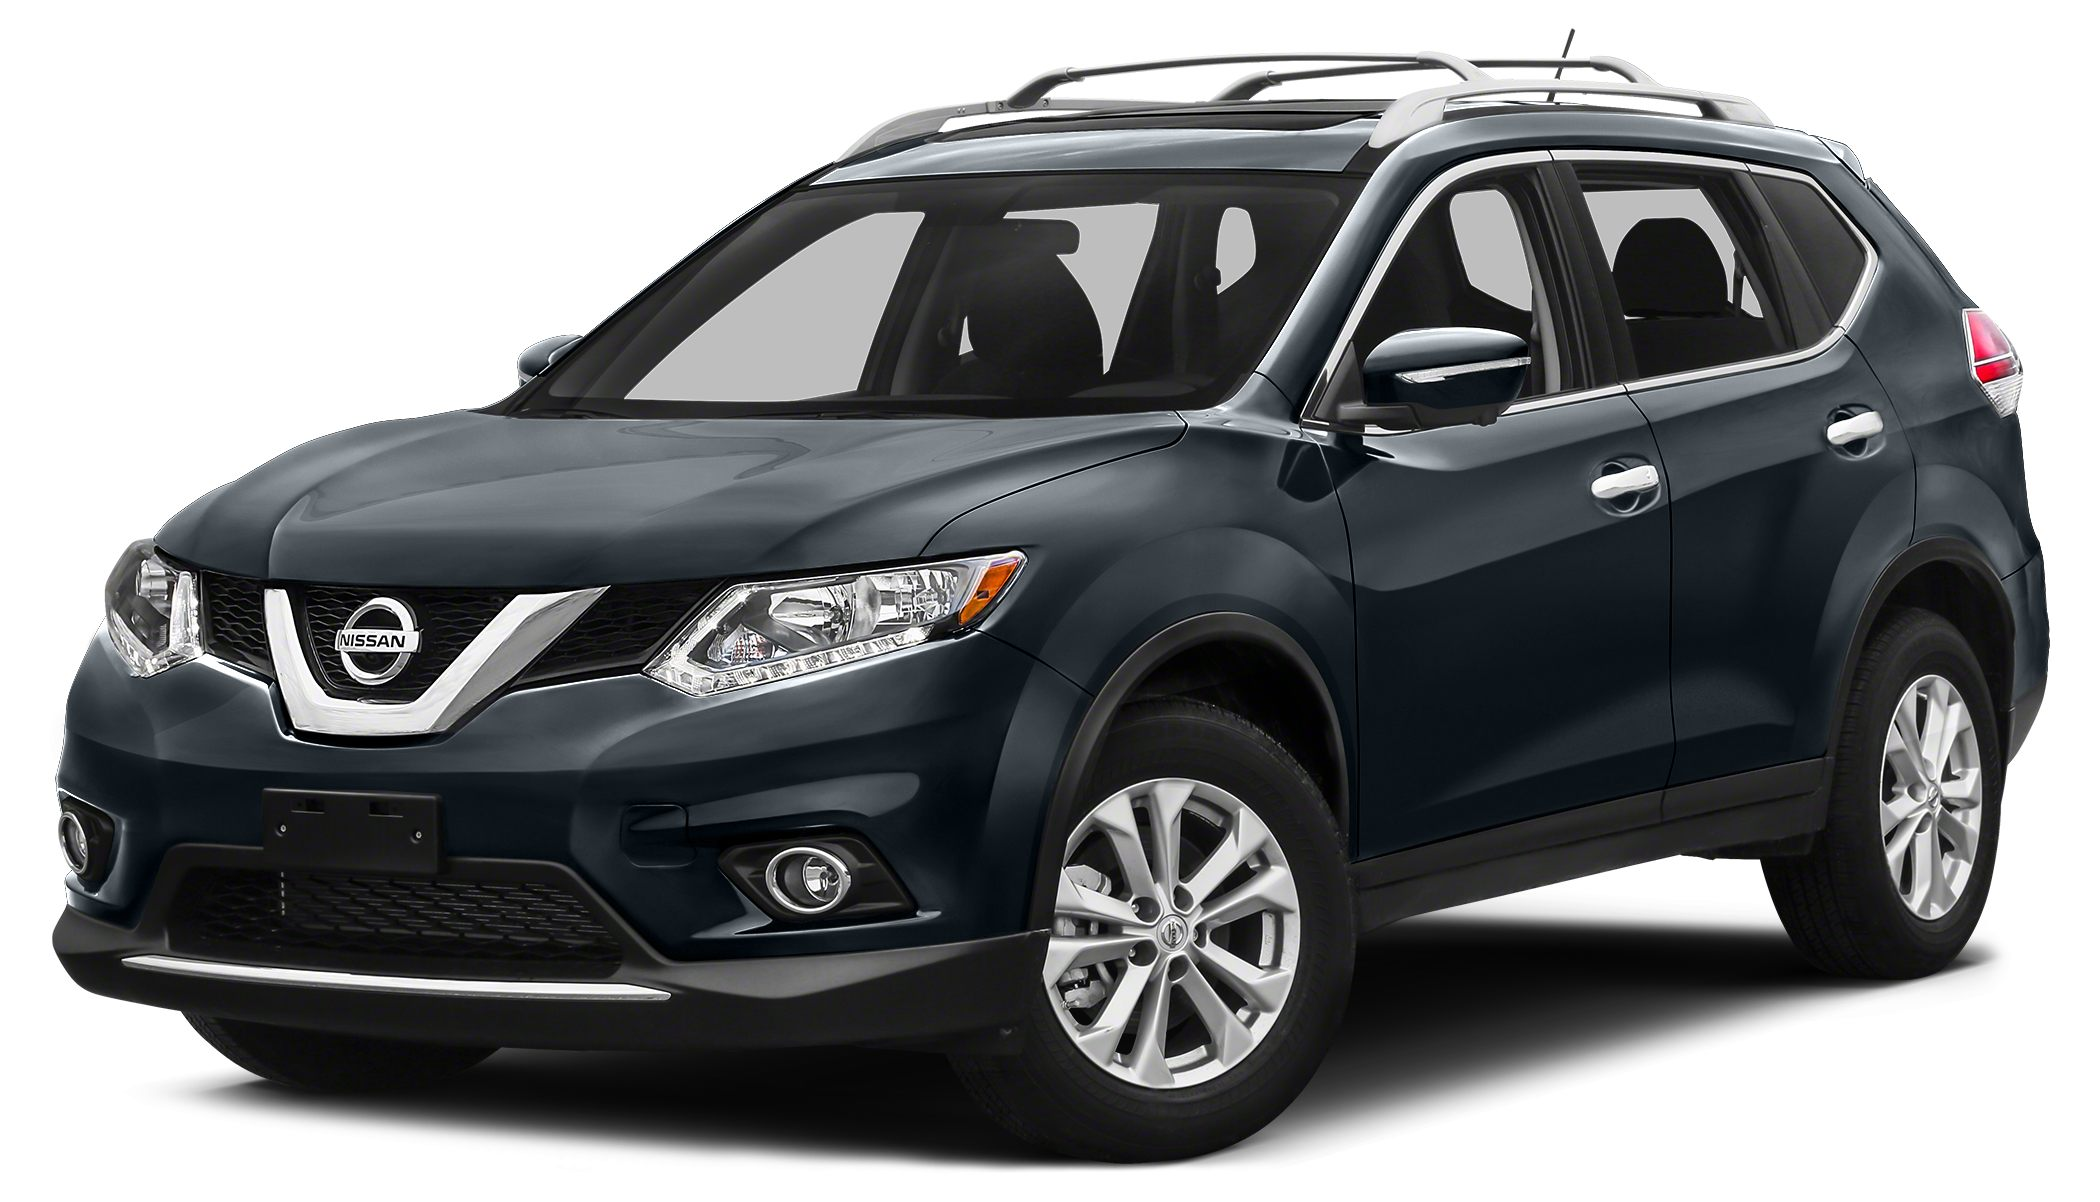 2014 Nissan Rogue  Auto Check 1 Owner 25L I4 DOHC 16V and CVT with Xtronic Switch to Sarasota F